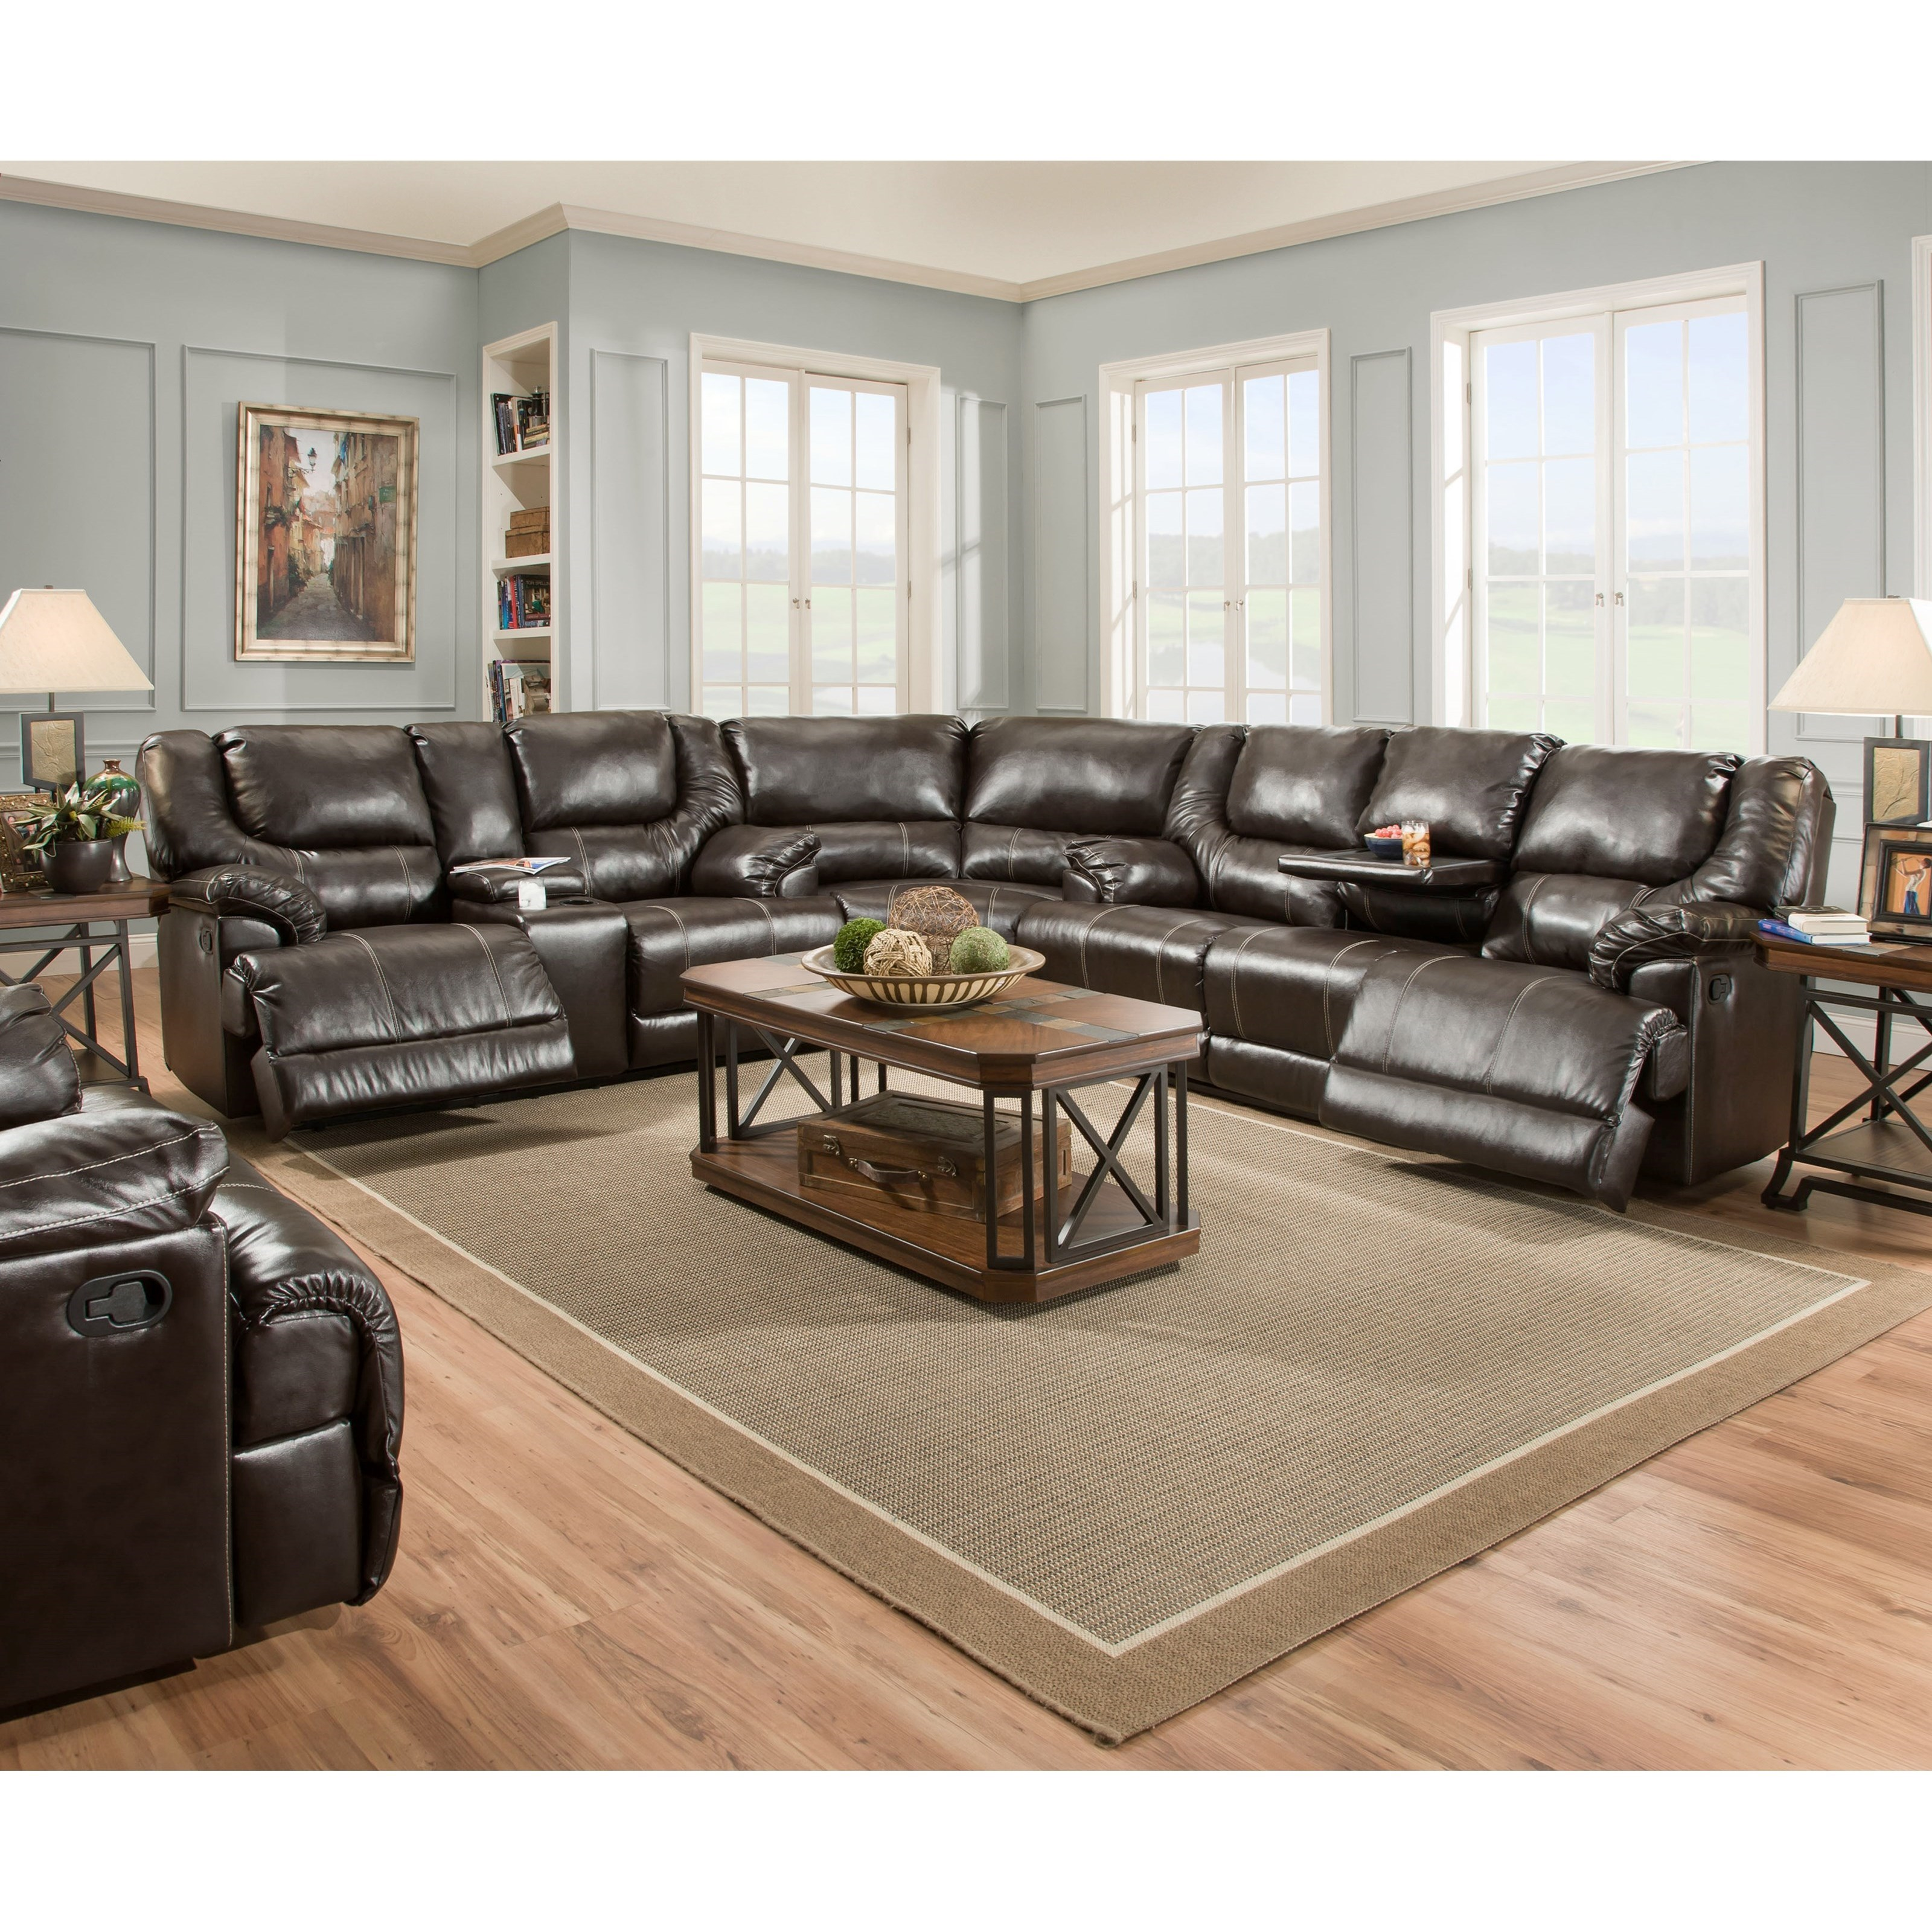 50451 3-Piece Reclining Sectional by United Furniture Industries at Bullard Furniture